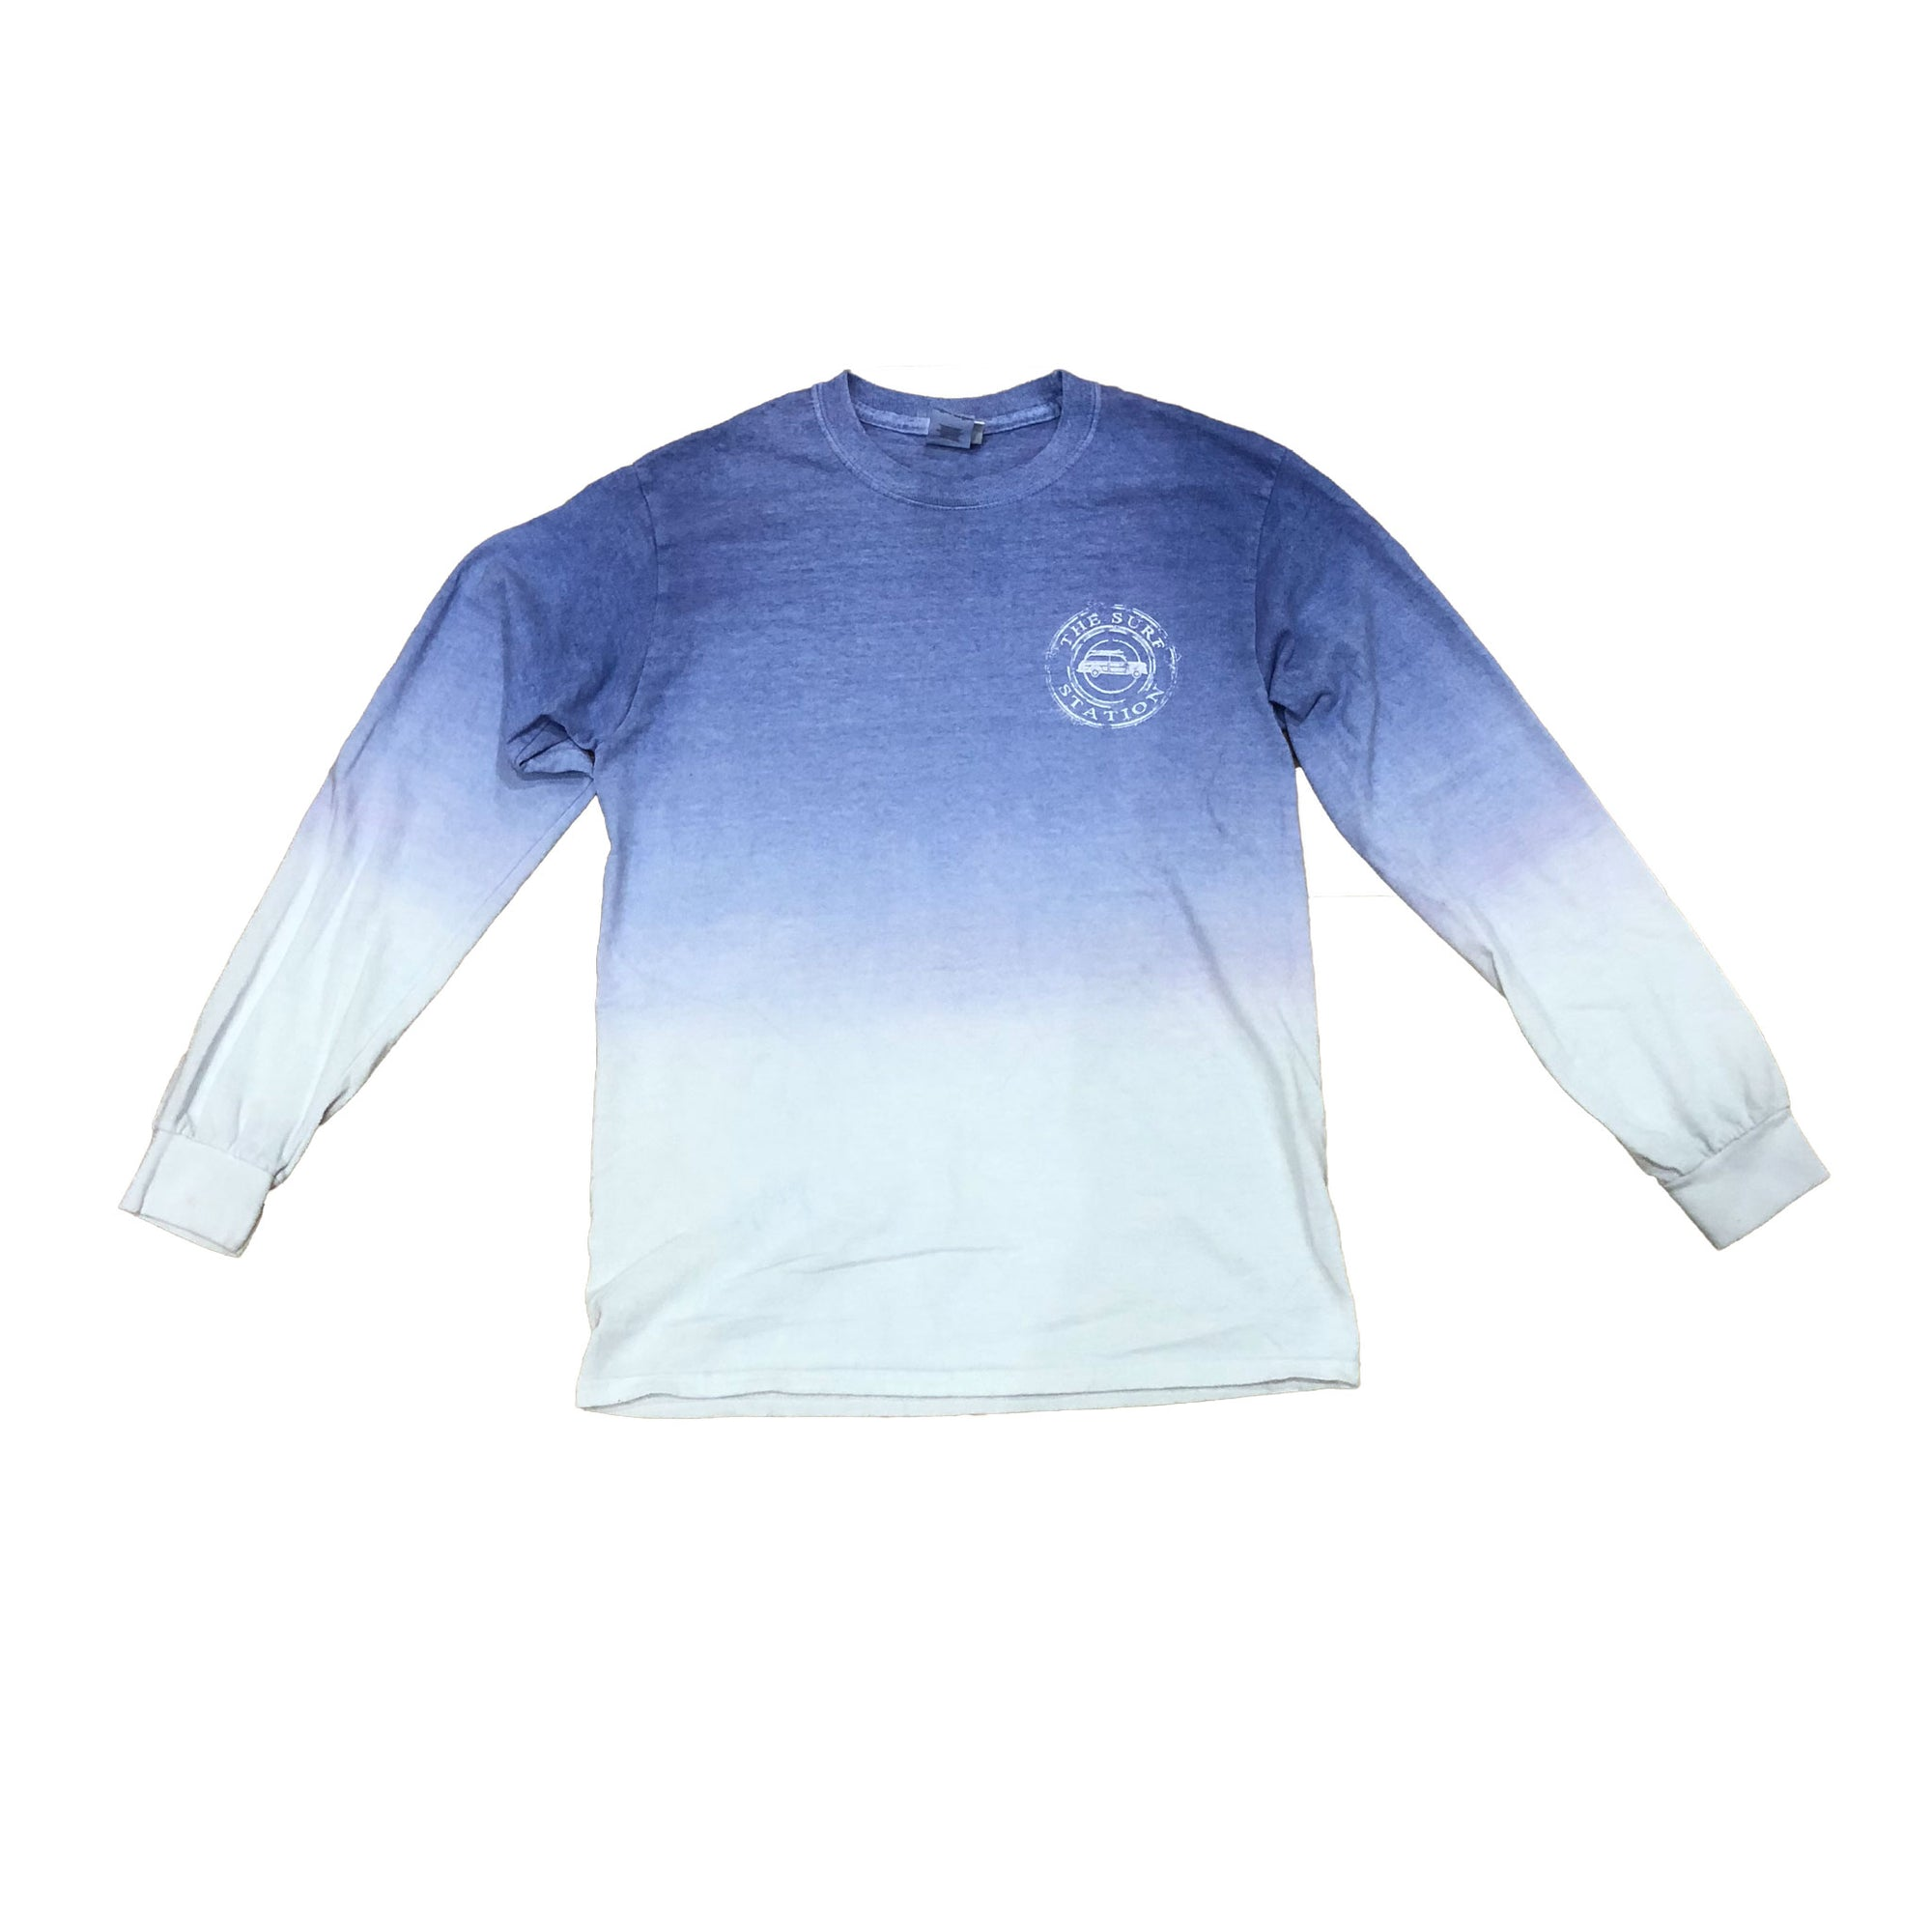 Surf Station Woody Cruiser Women's L/S T-shirt